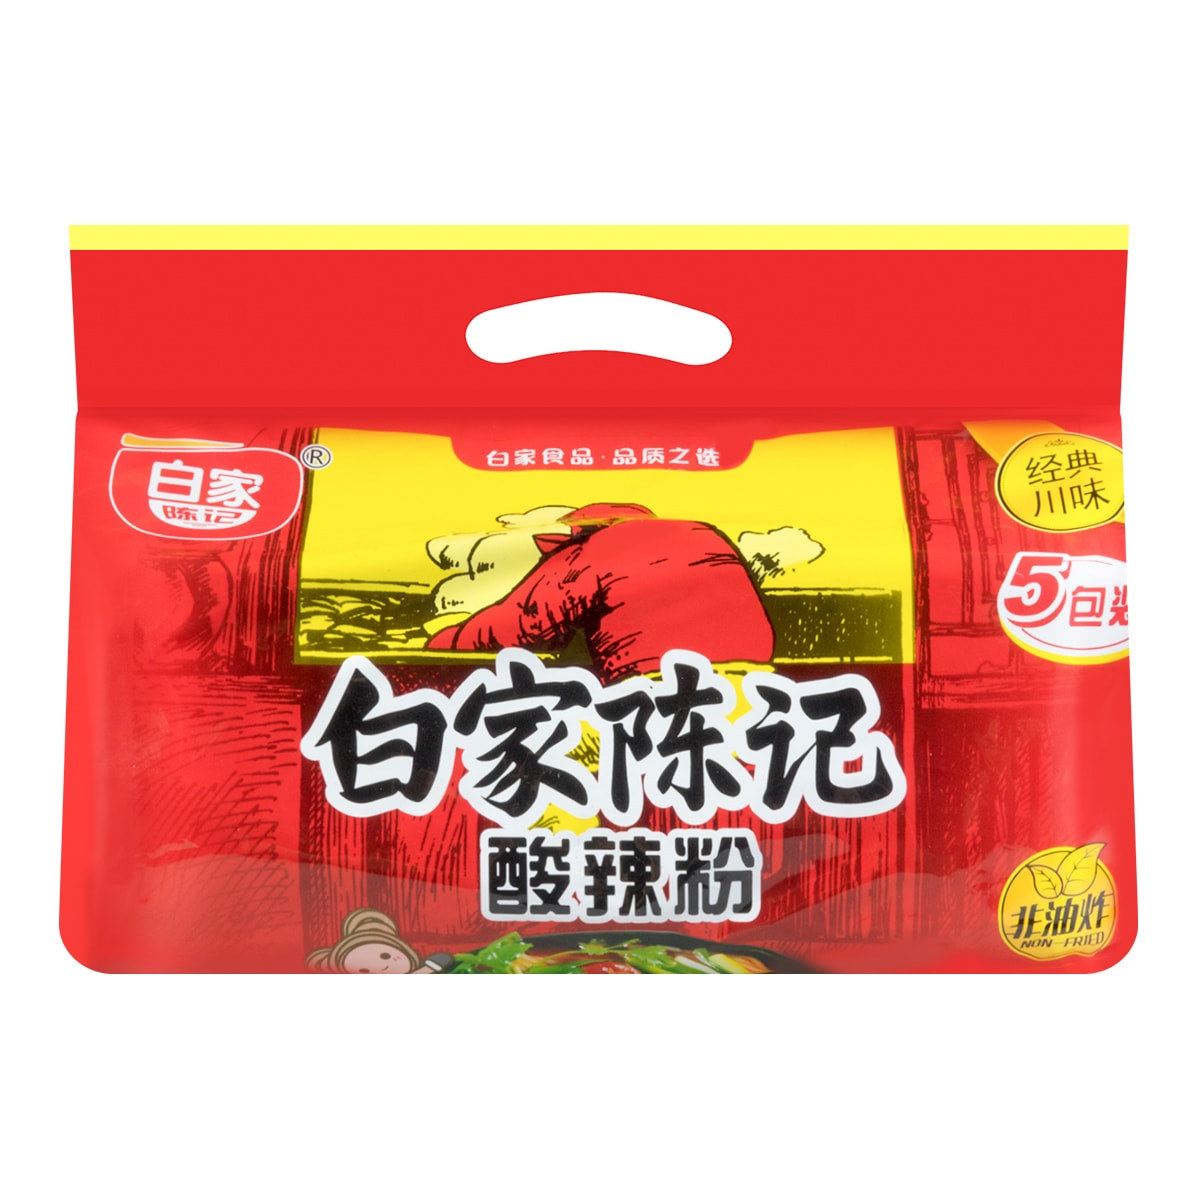 BAIJIA Instant Vermicelli 5packs -Spicy and Sour Flavor 525g